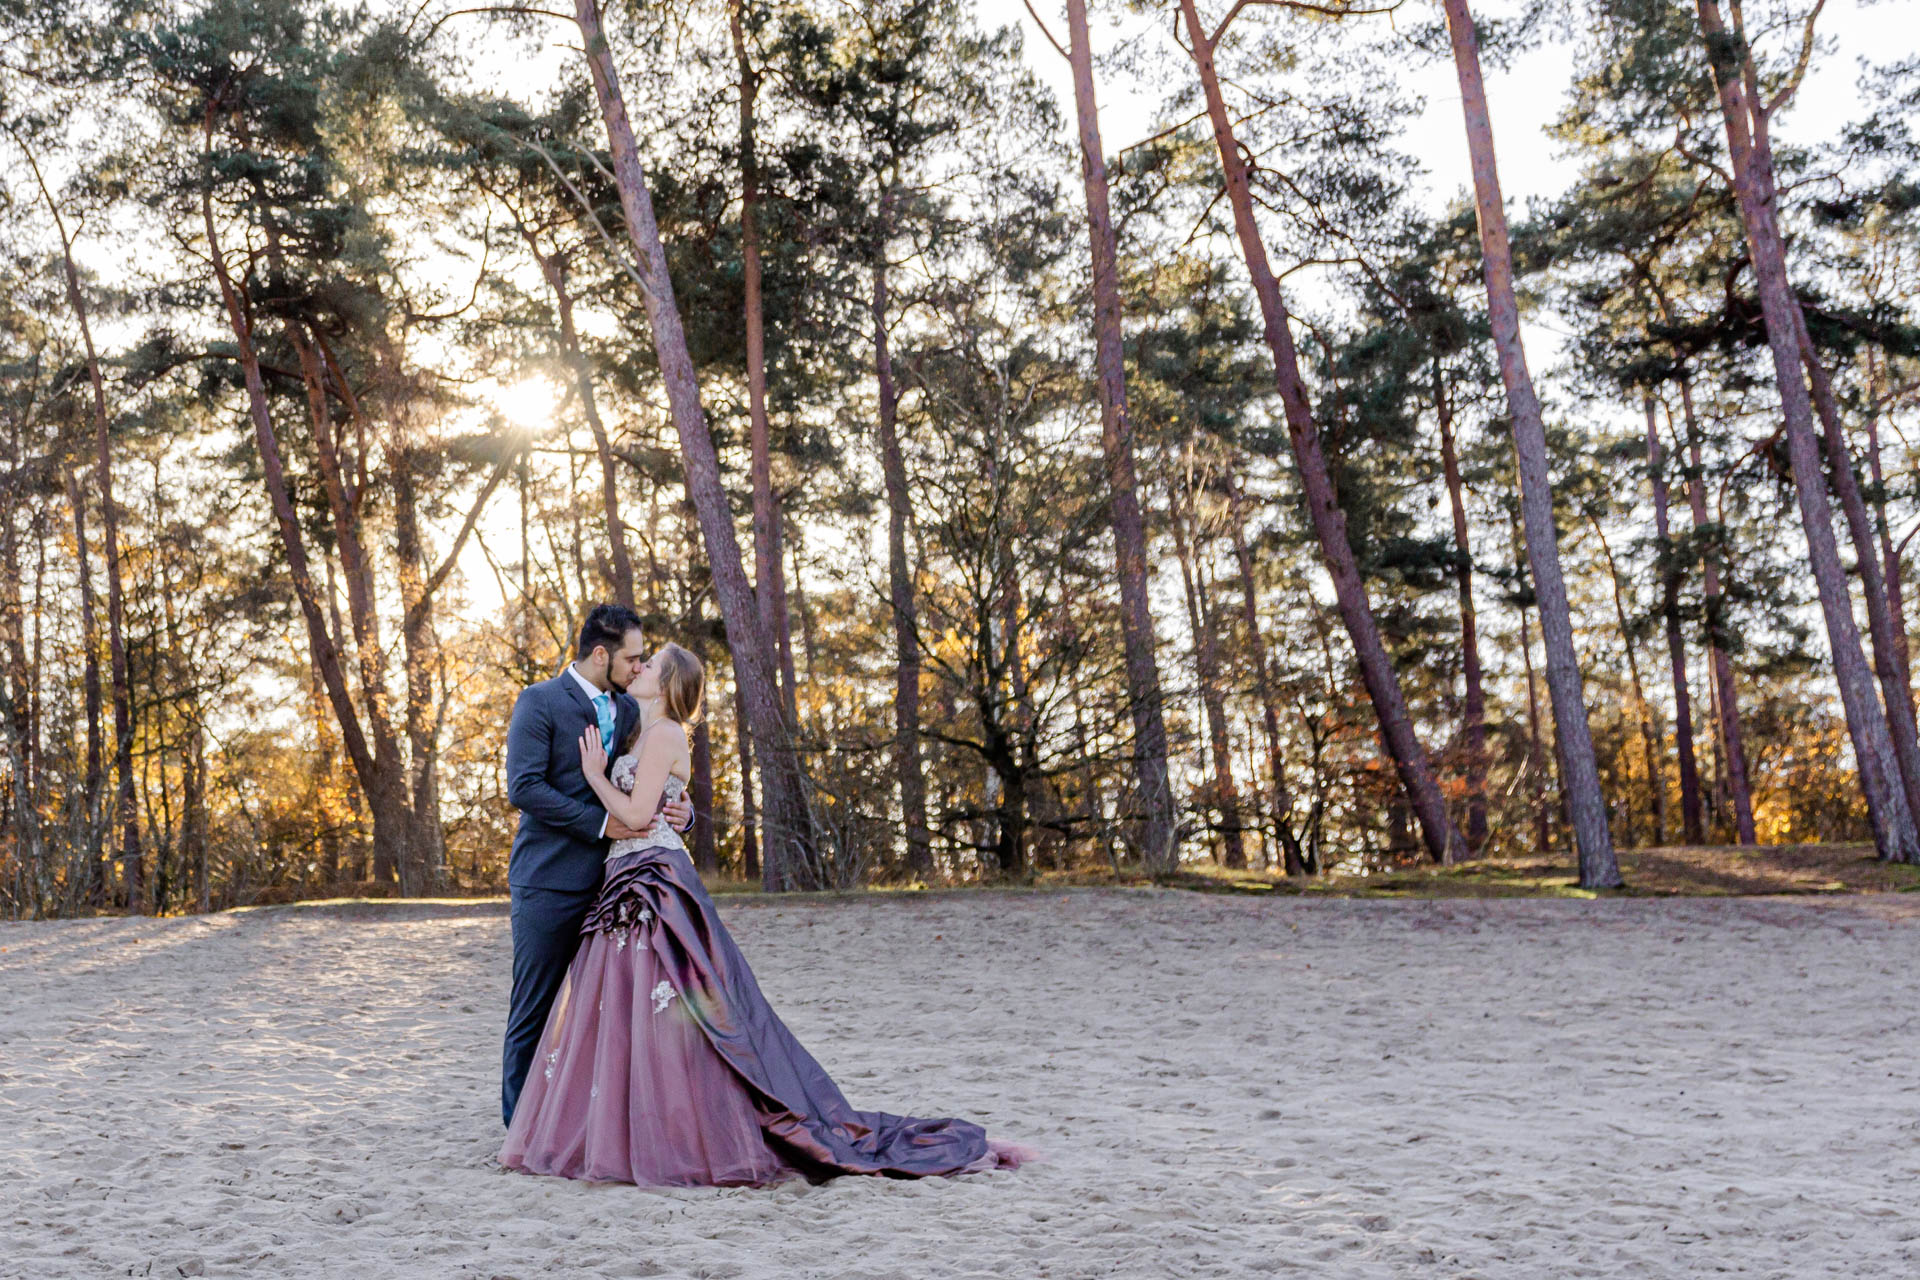 After wedding fotografie